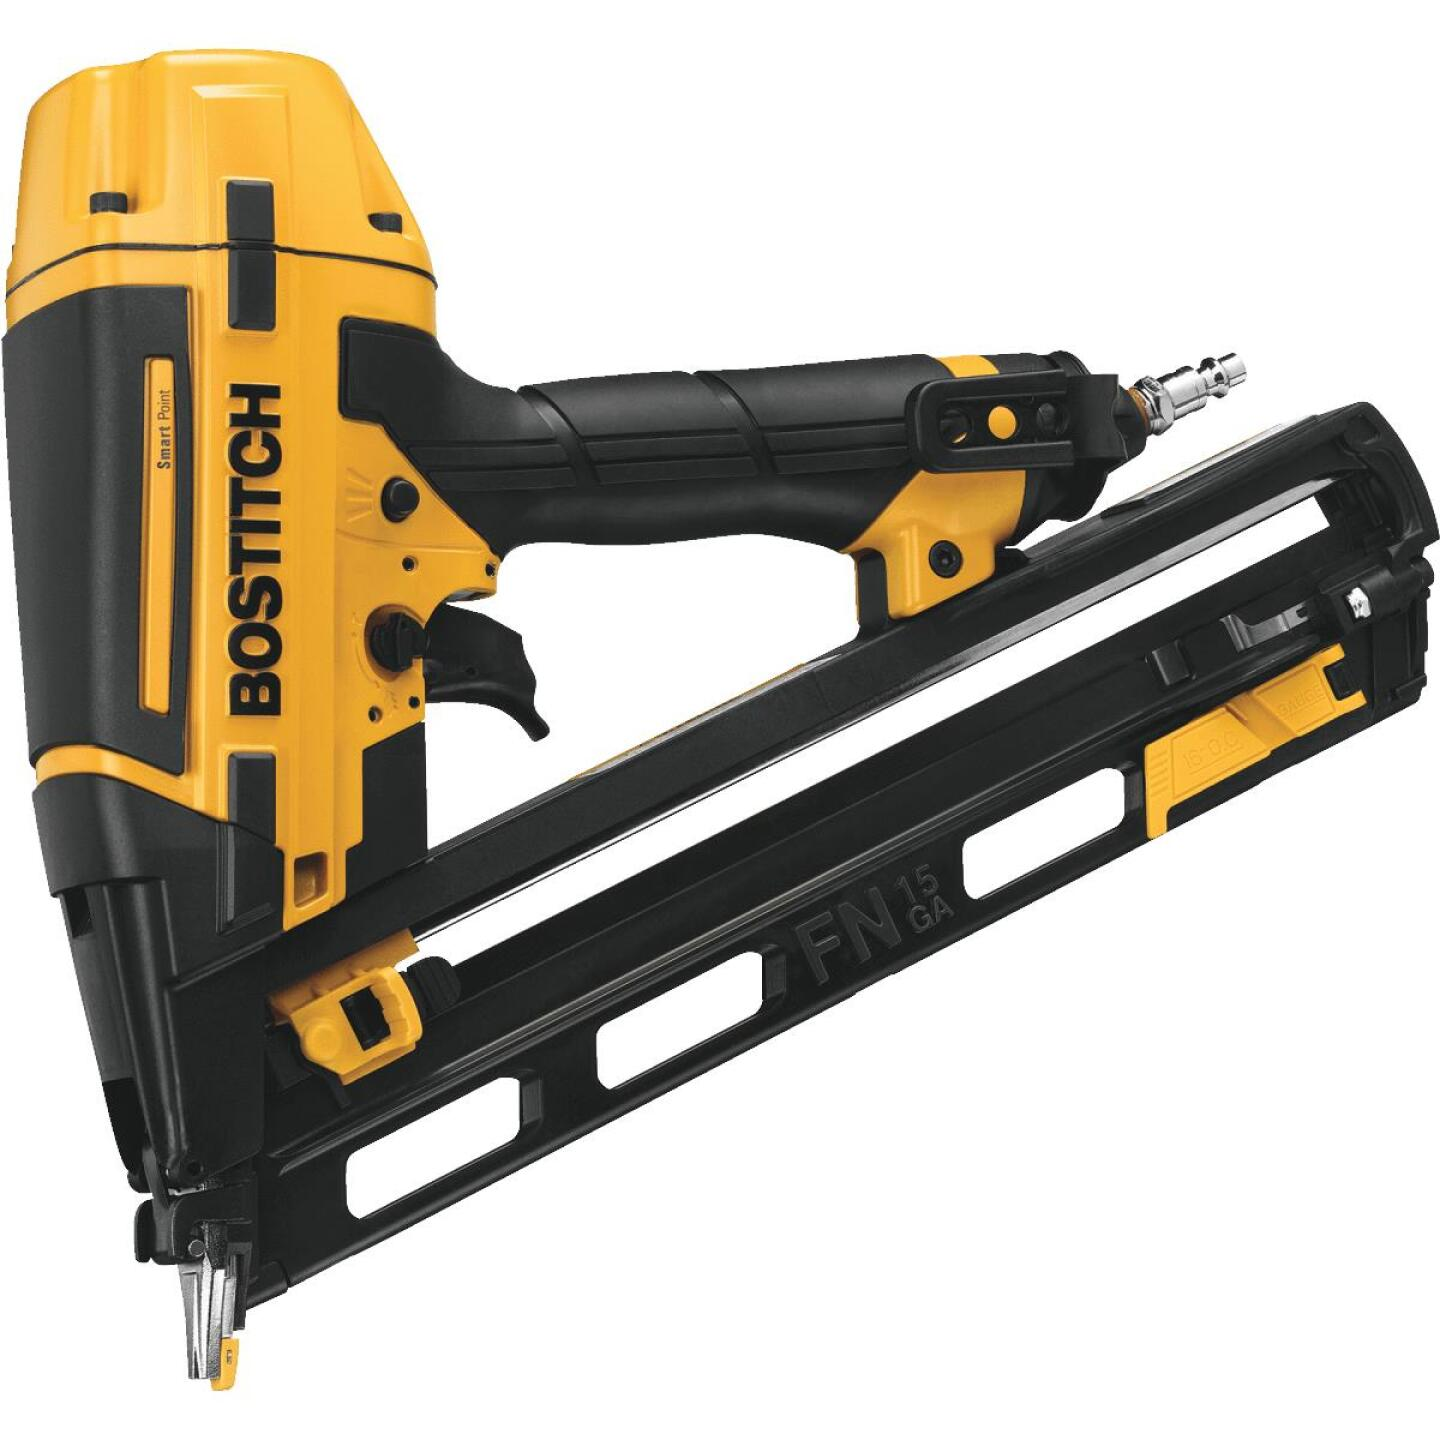 Bostitch Smart Point 15-Gauge 2-1/2 In. Angled Finish Nailer Kit Image 1